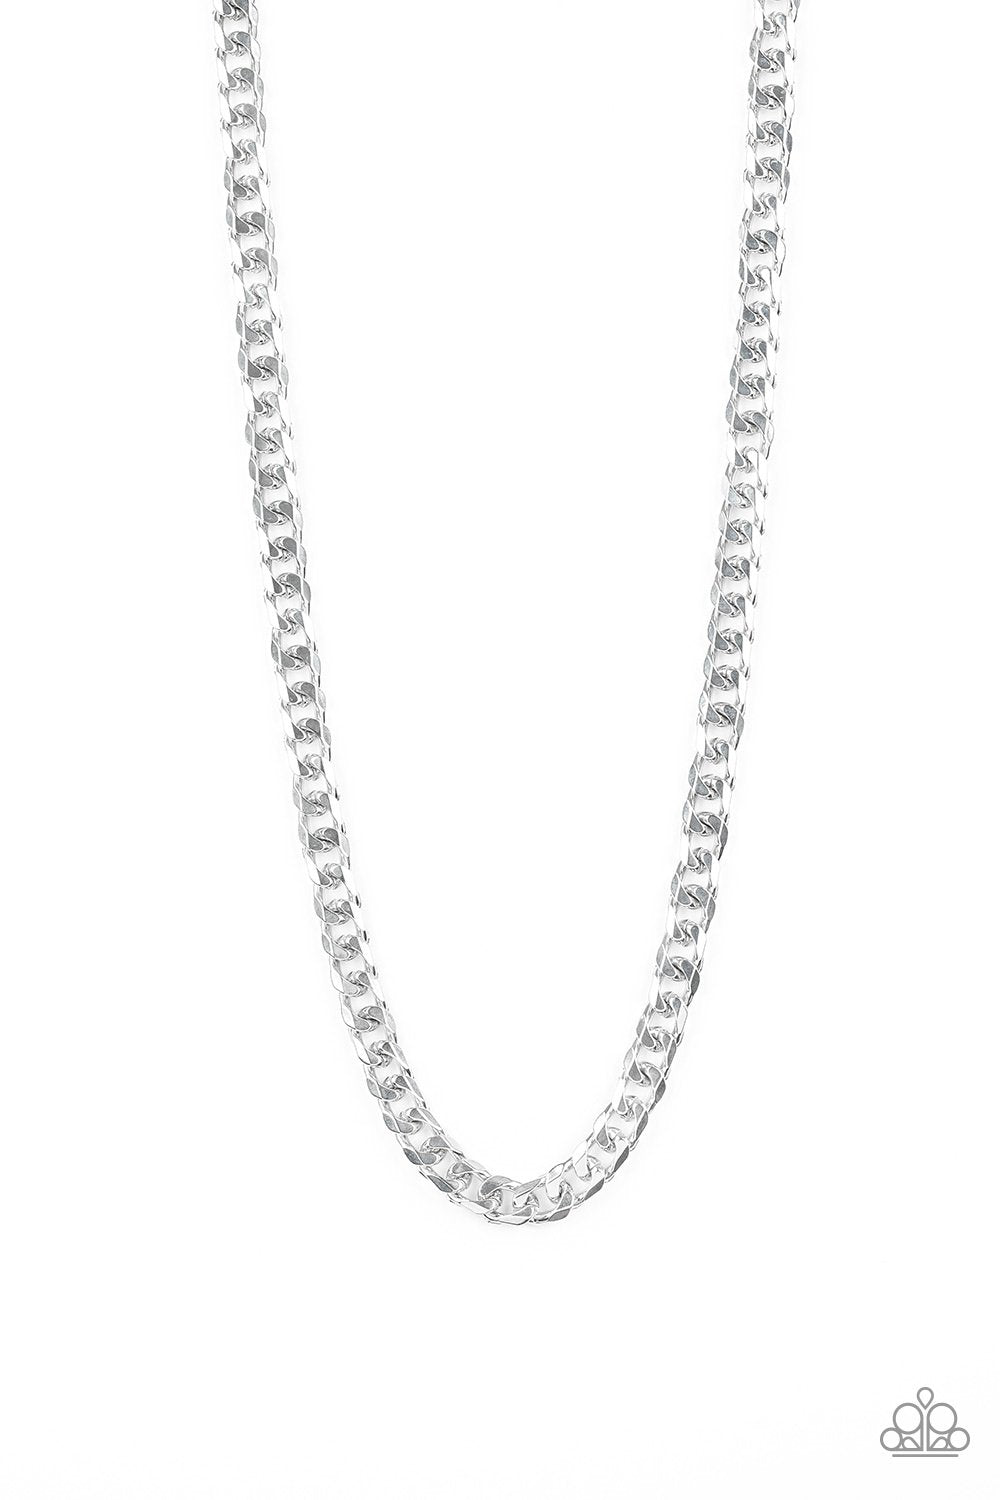 The Game CHAIN-ger - Silver Necklace